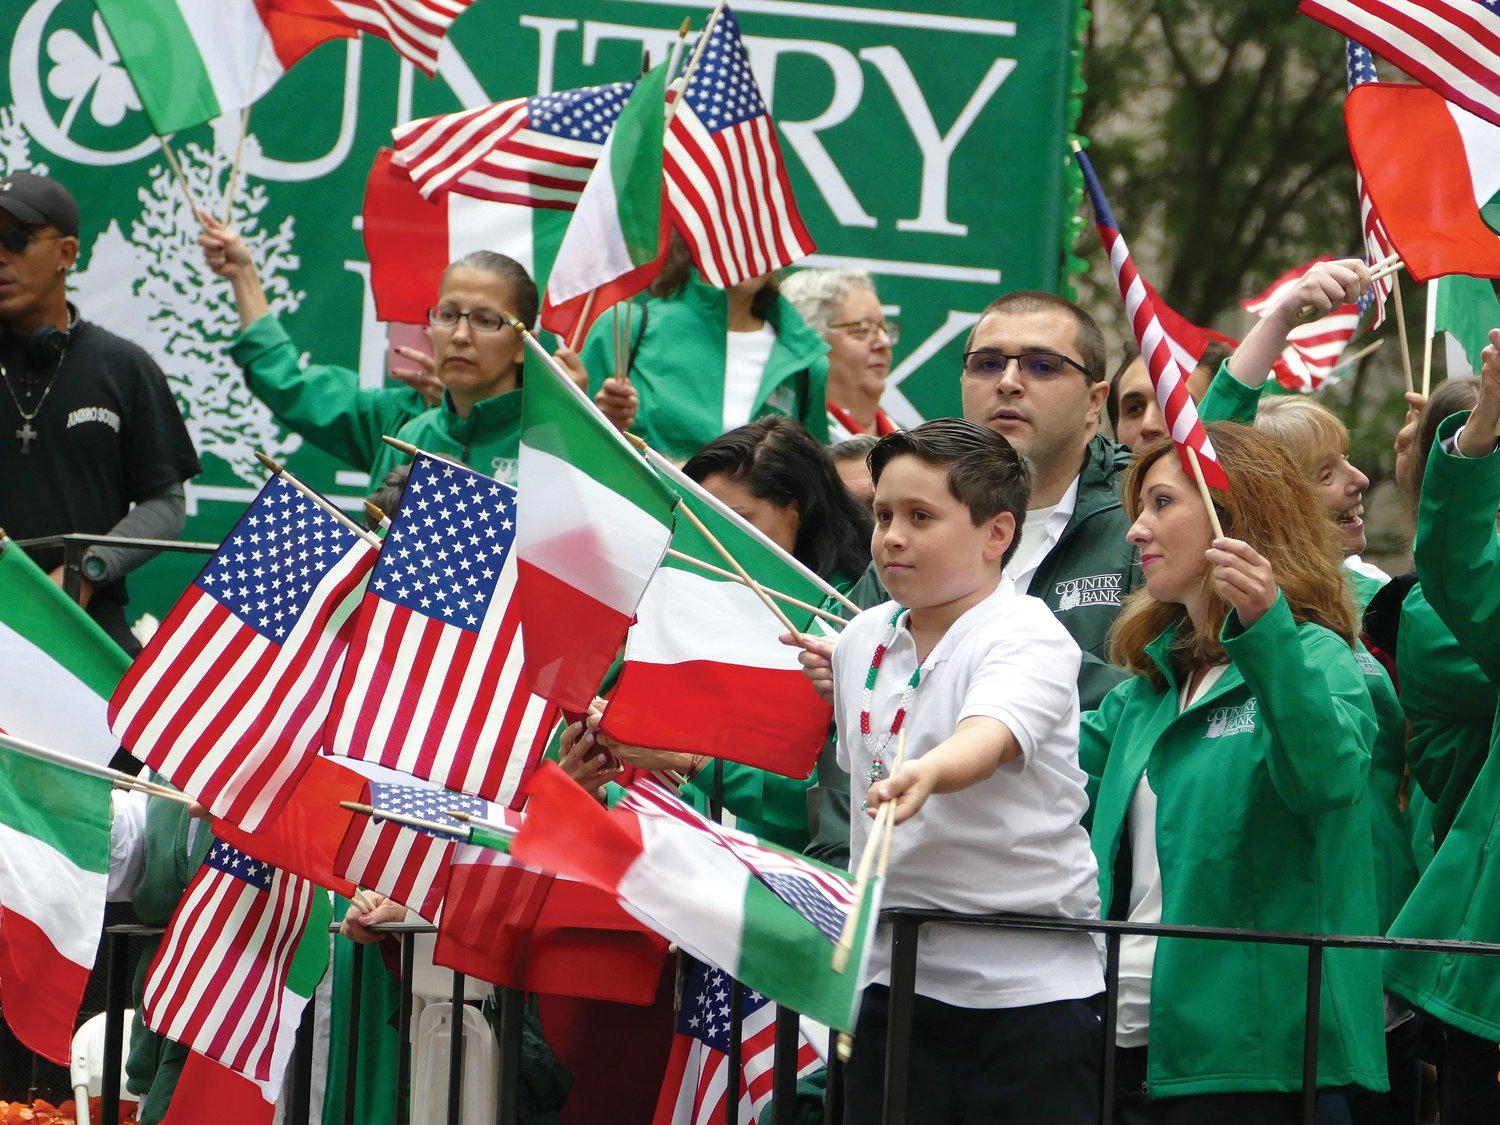 People wave Italian and American flags aboard one of the floats in the 74th annual Columbus Day Parade on Fifth Avenue in Manhattan Oct. 8.